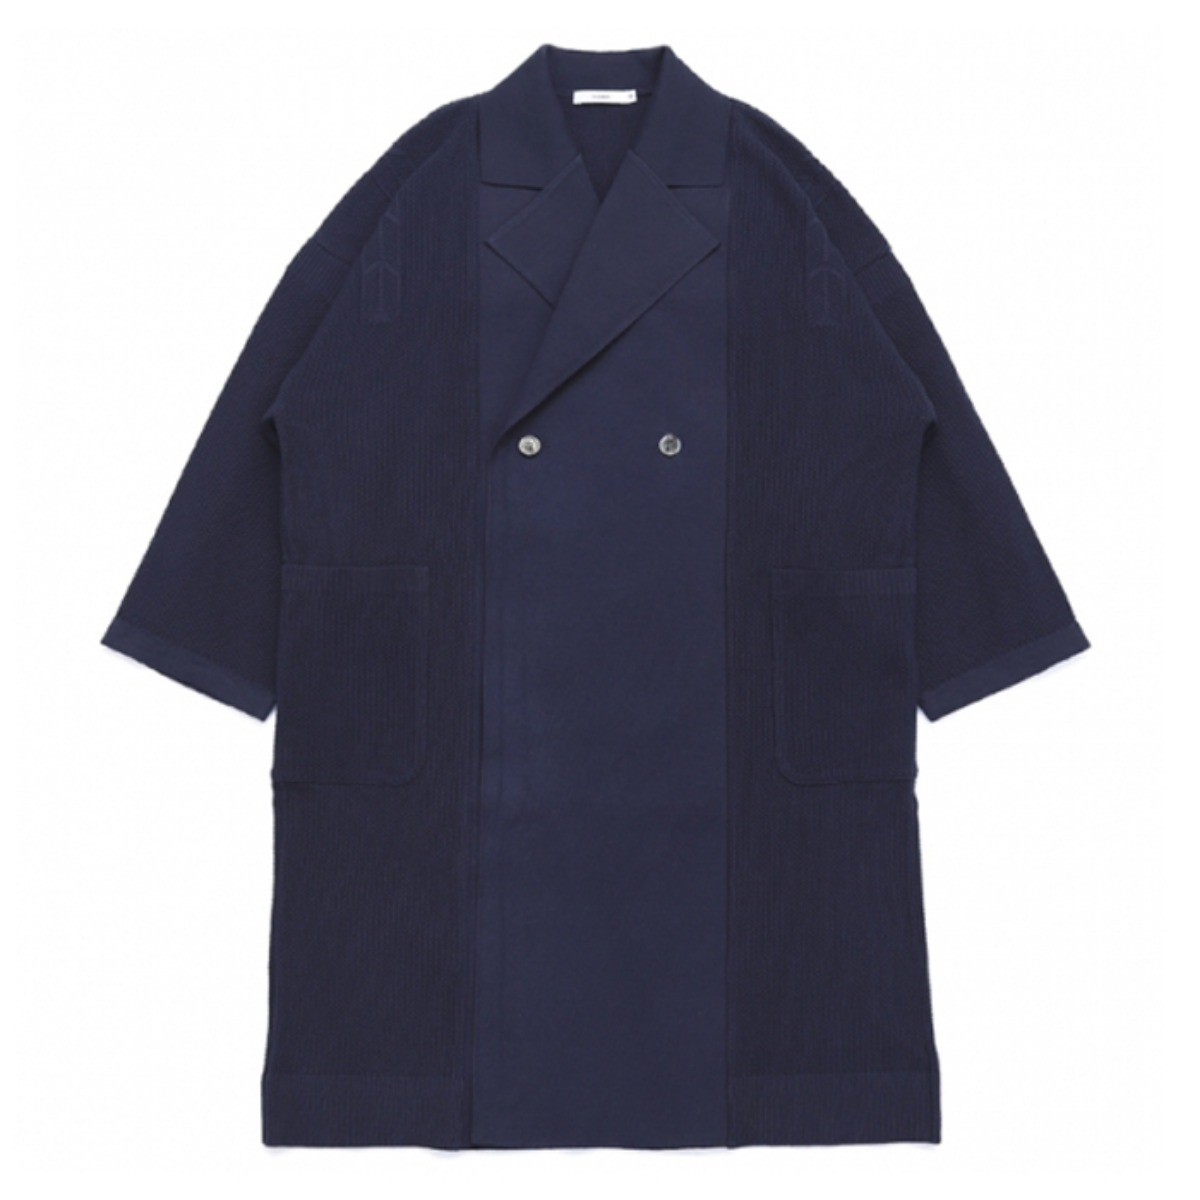 [YASHIKI] SAMIDARE KNIT COAT 'NAVY'